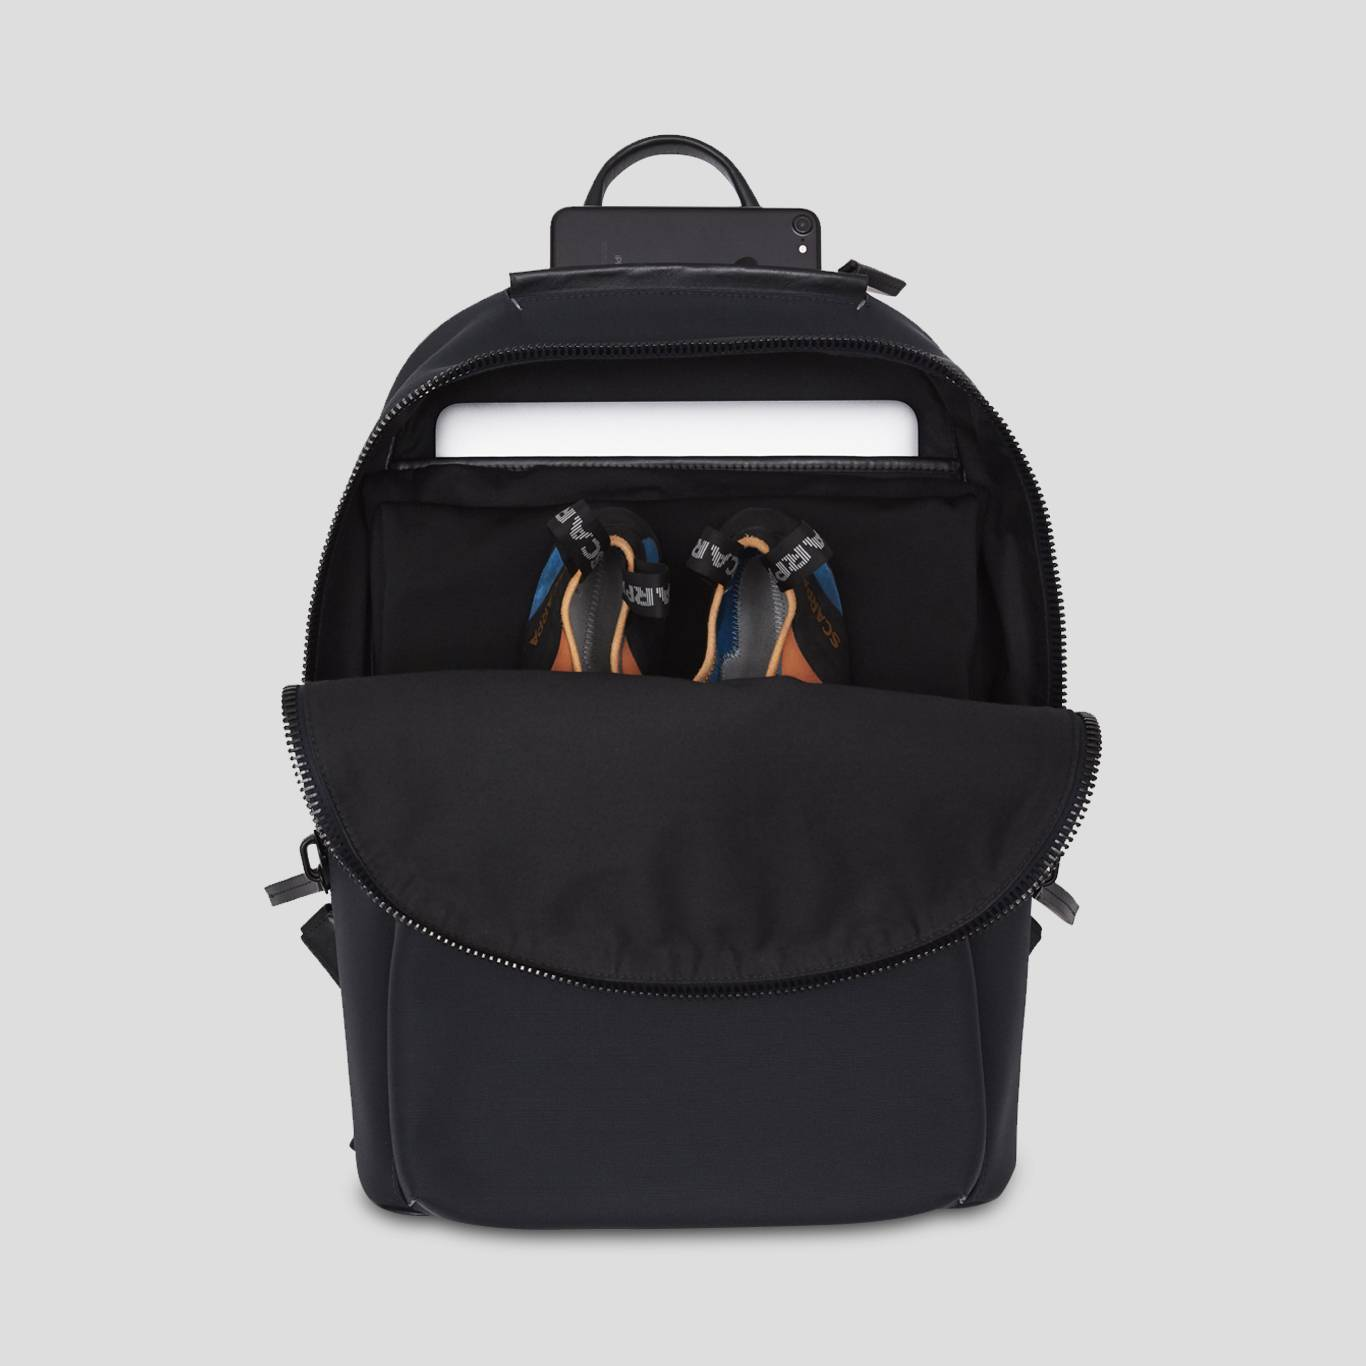 Slipstream rucksack with laptop pocket and climbing shoes